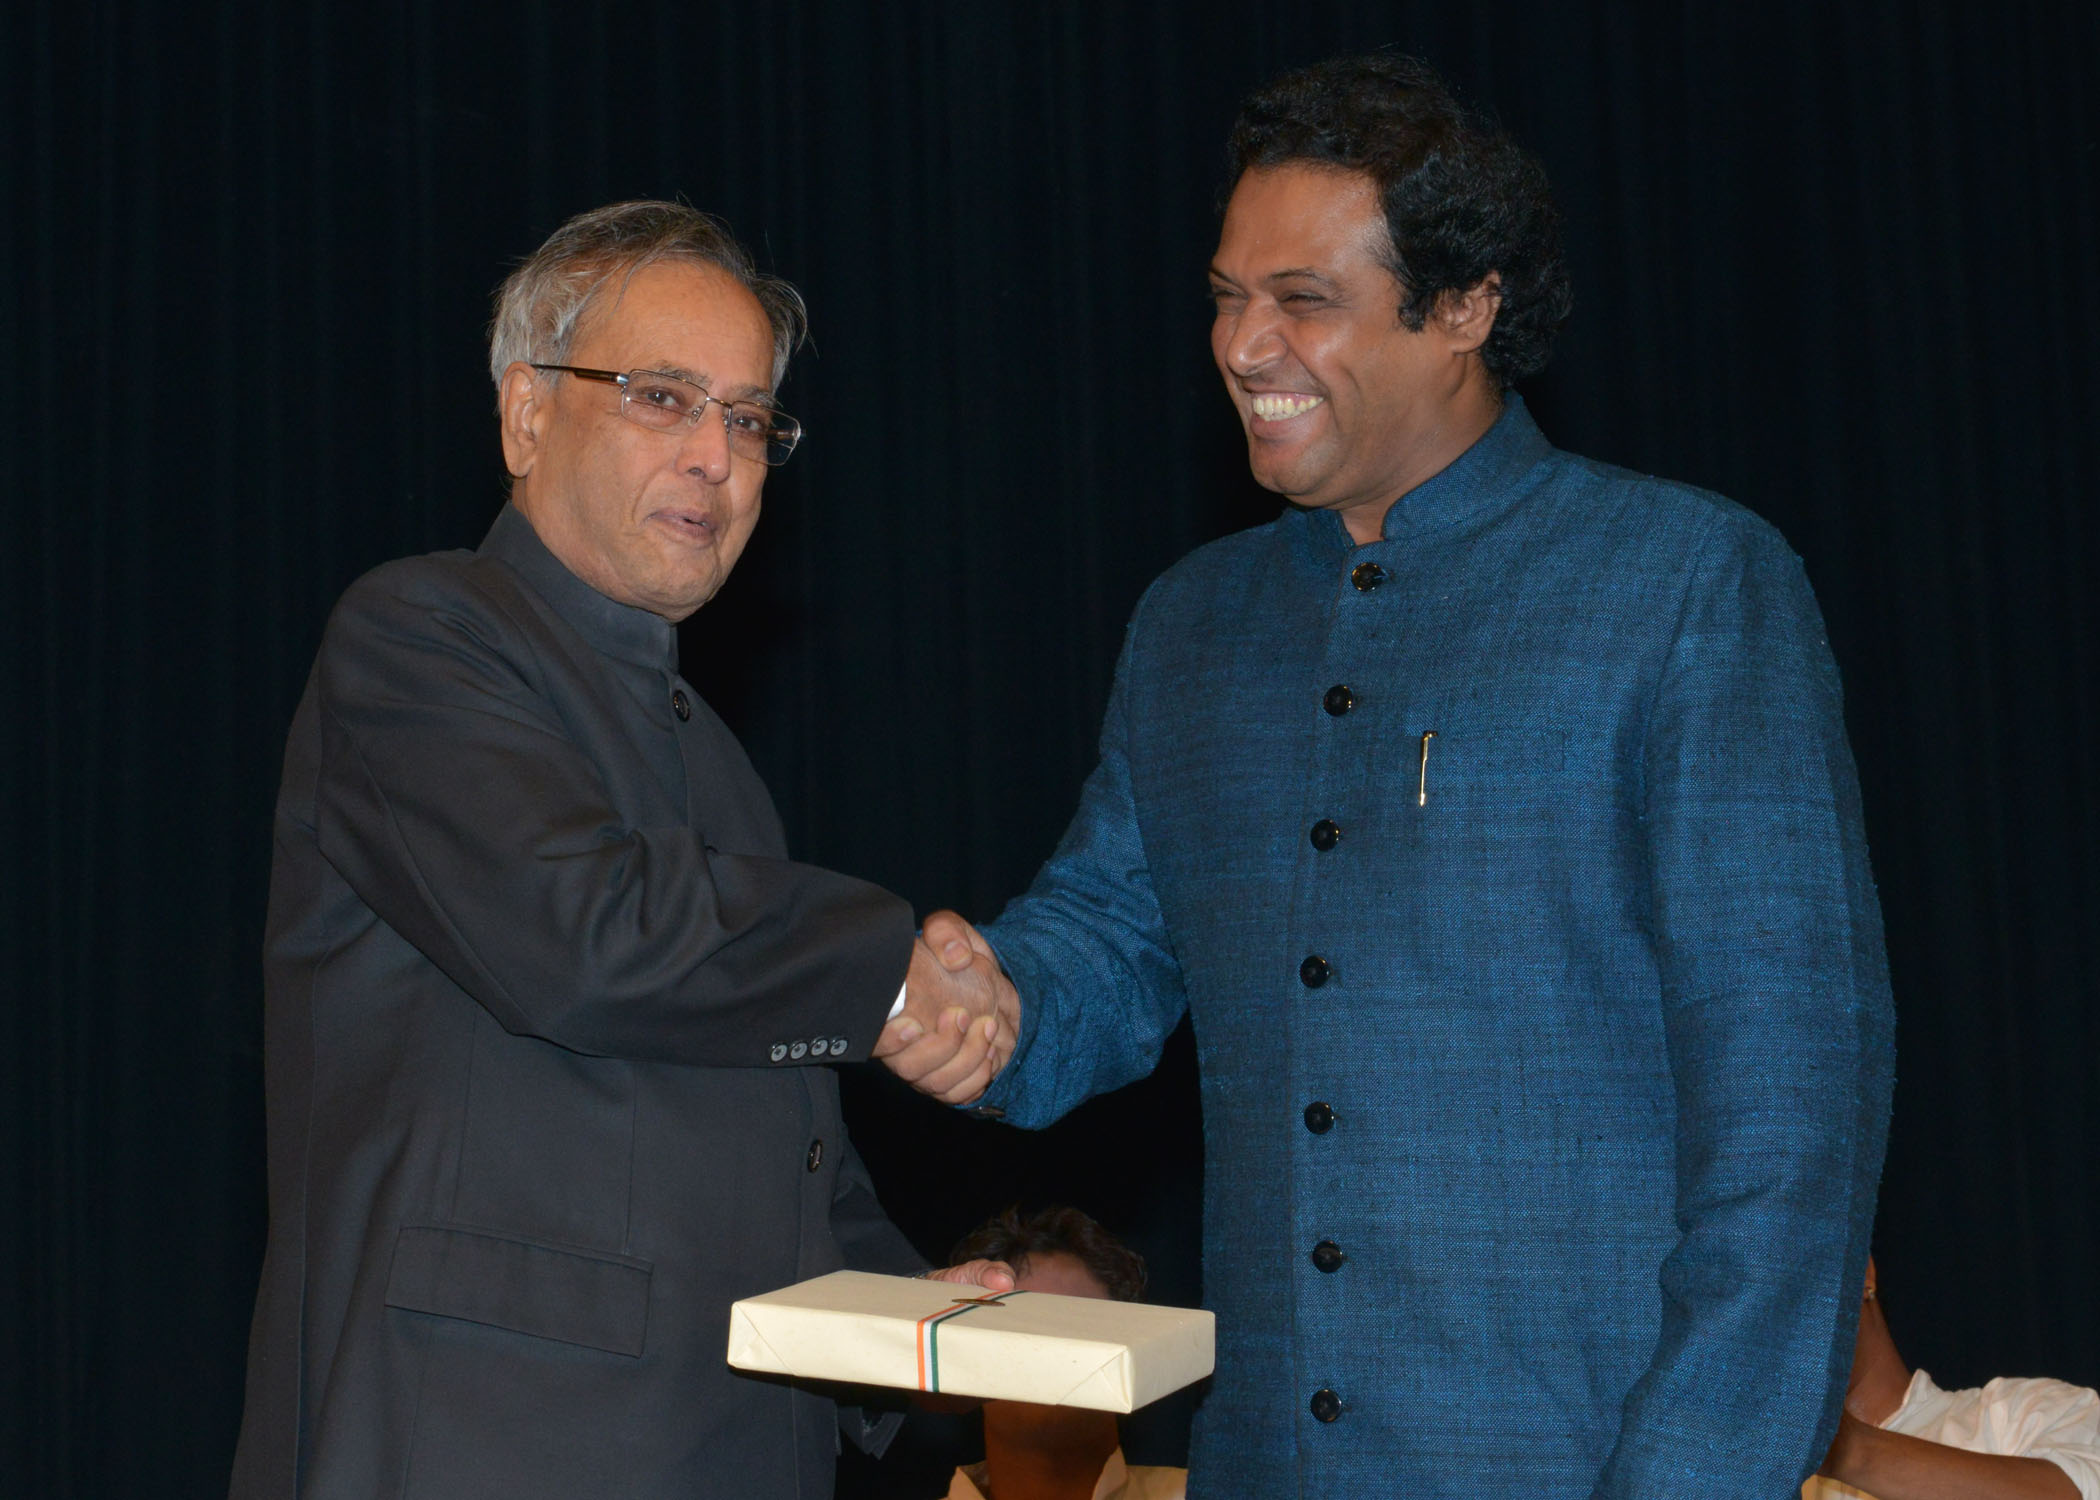 Dr. Syed Sallauddin Pasha with Shri Pranab Kumar Mukherjee is the 13th and current President of India